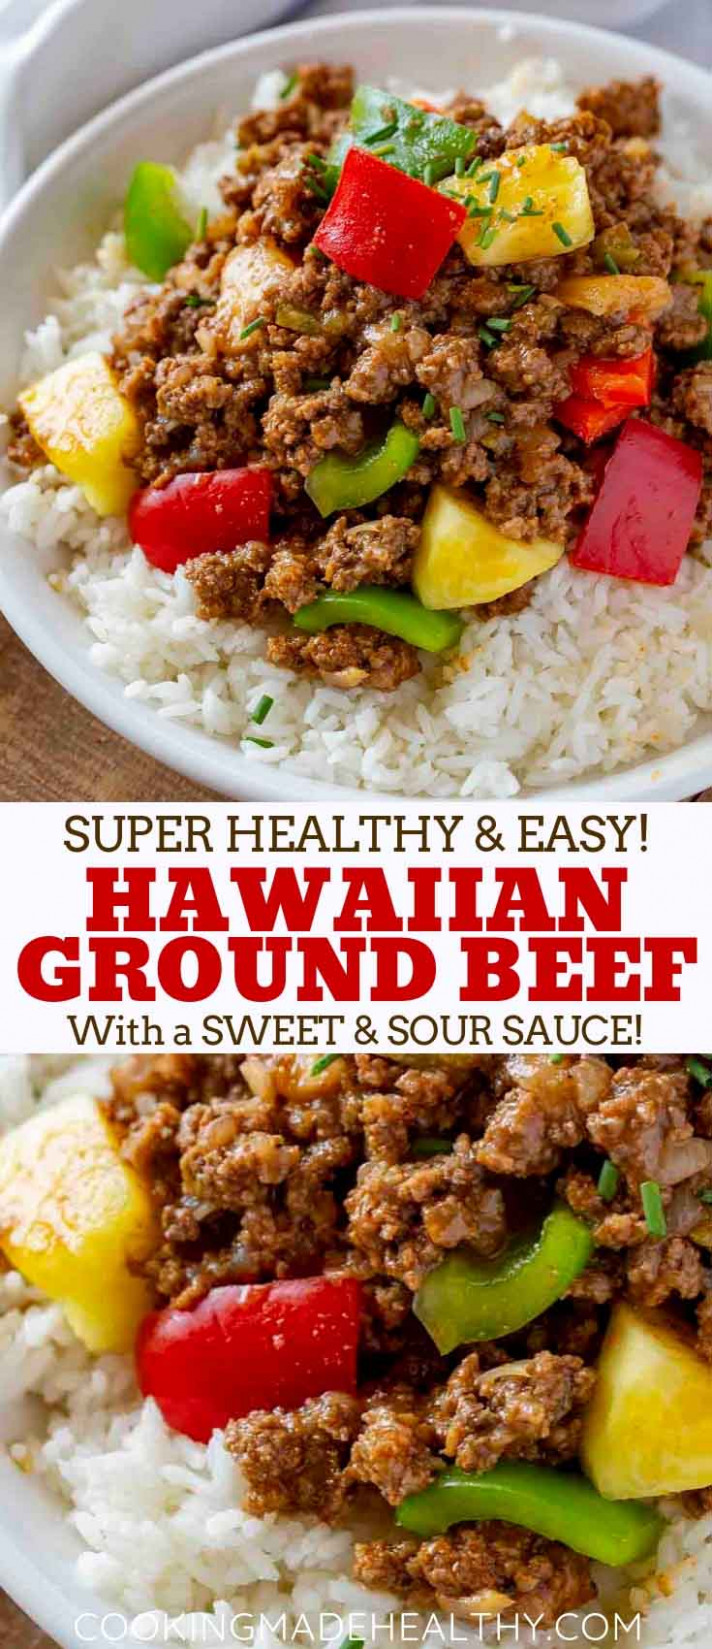 Ground Hawaiian Beef - Cooking Made Healthy - recipes using ground beef healthy